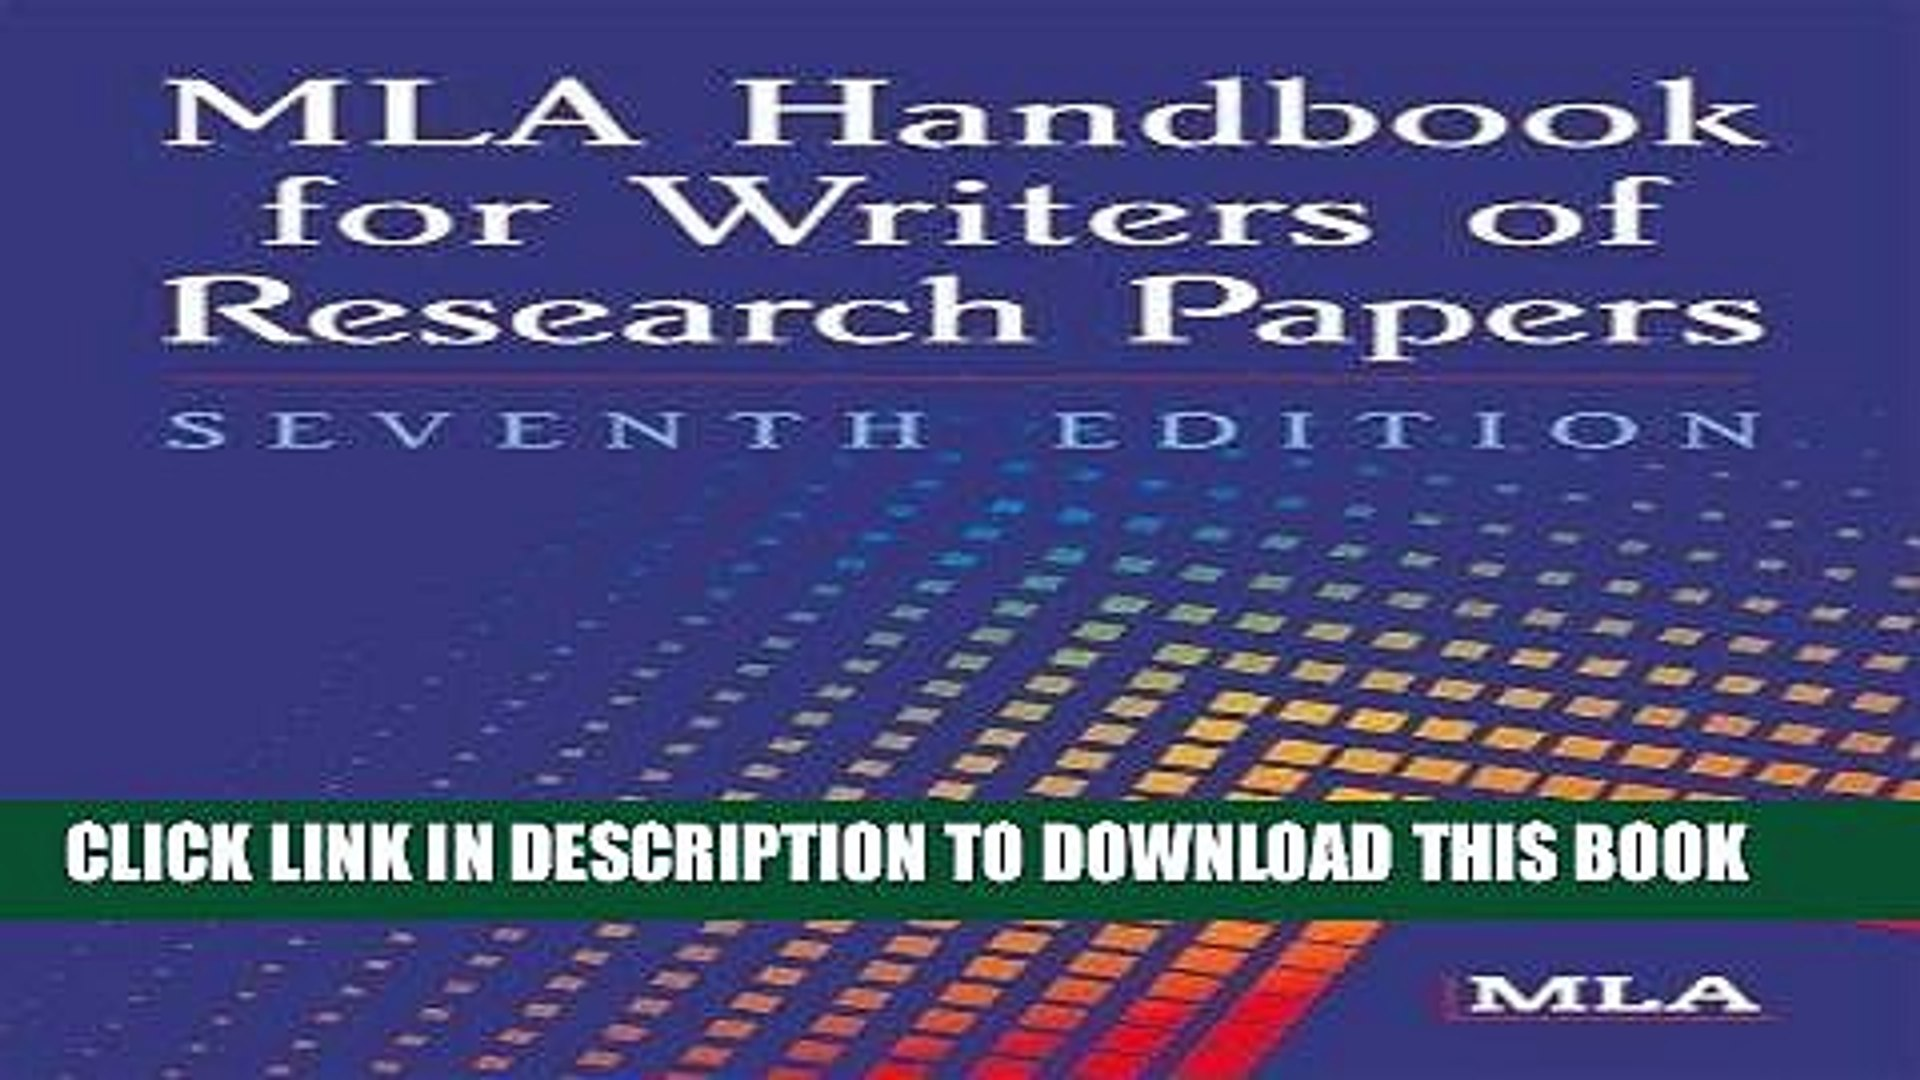 006 Research Paper Mla Handbook For Writing Papers X1080 Frightening Writers Of 8th Edition Pdf Free Download According To The Full